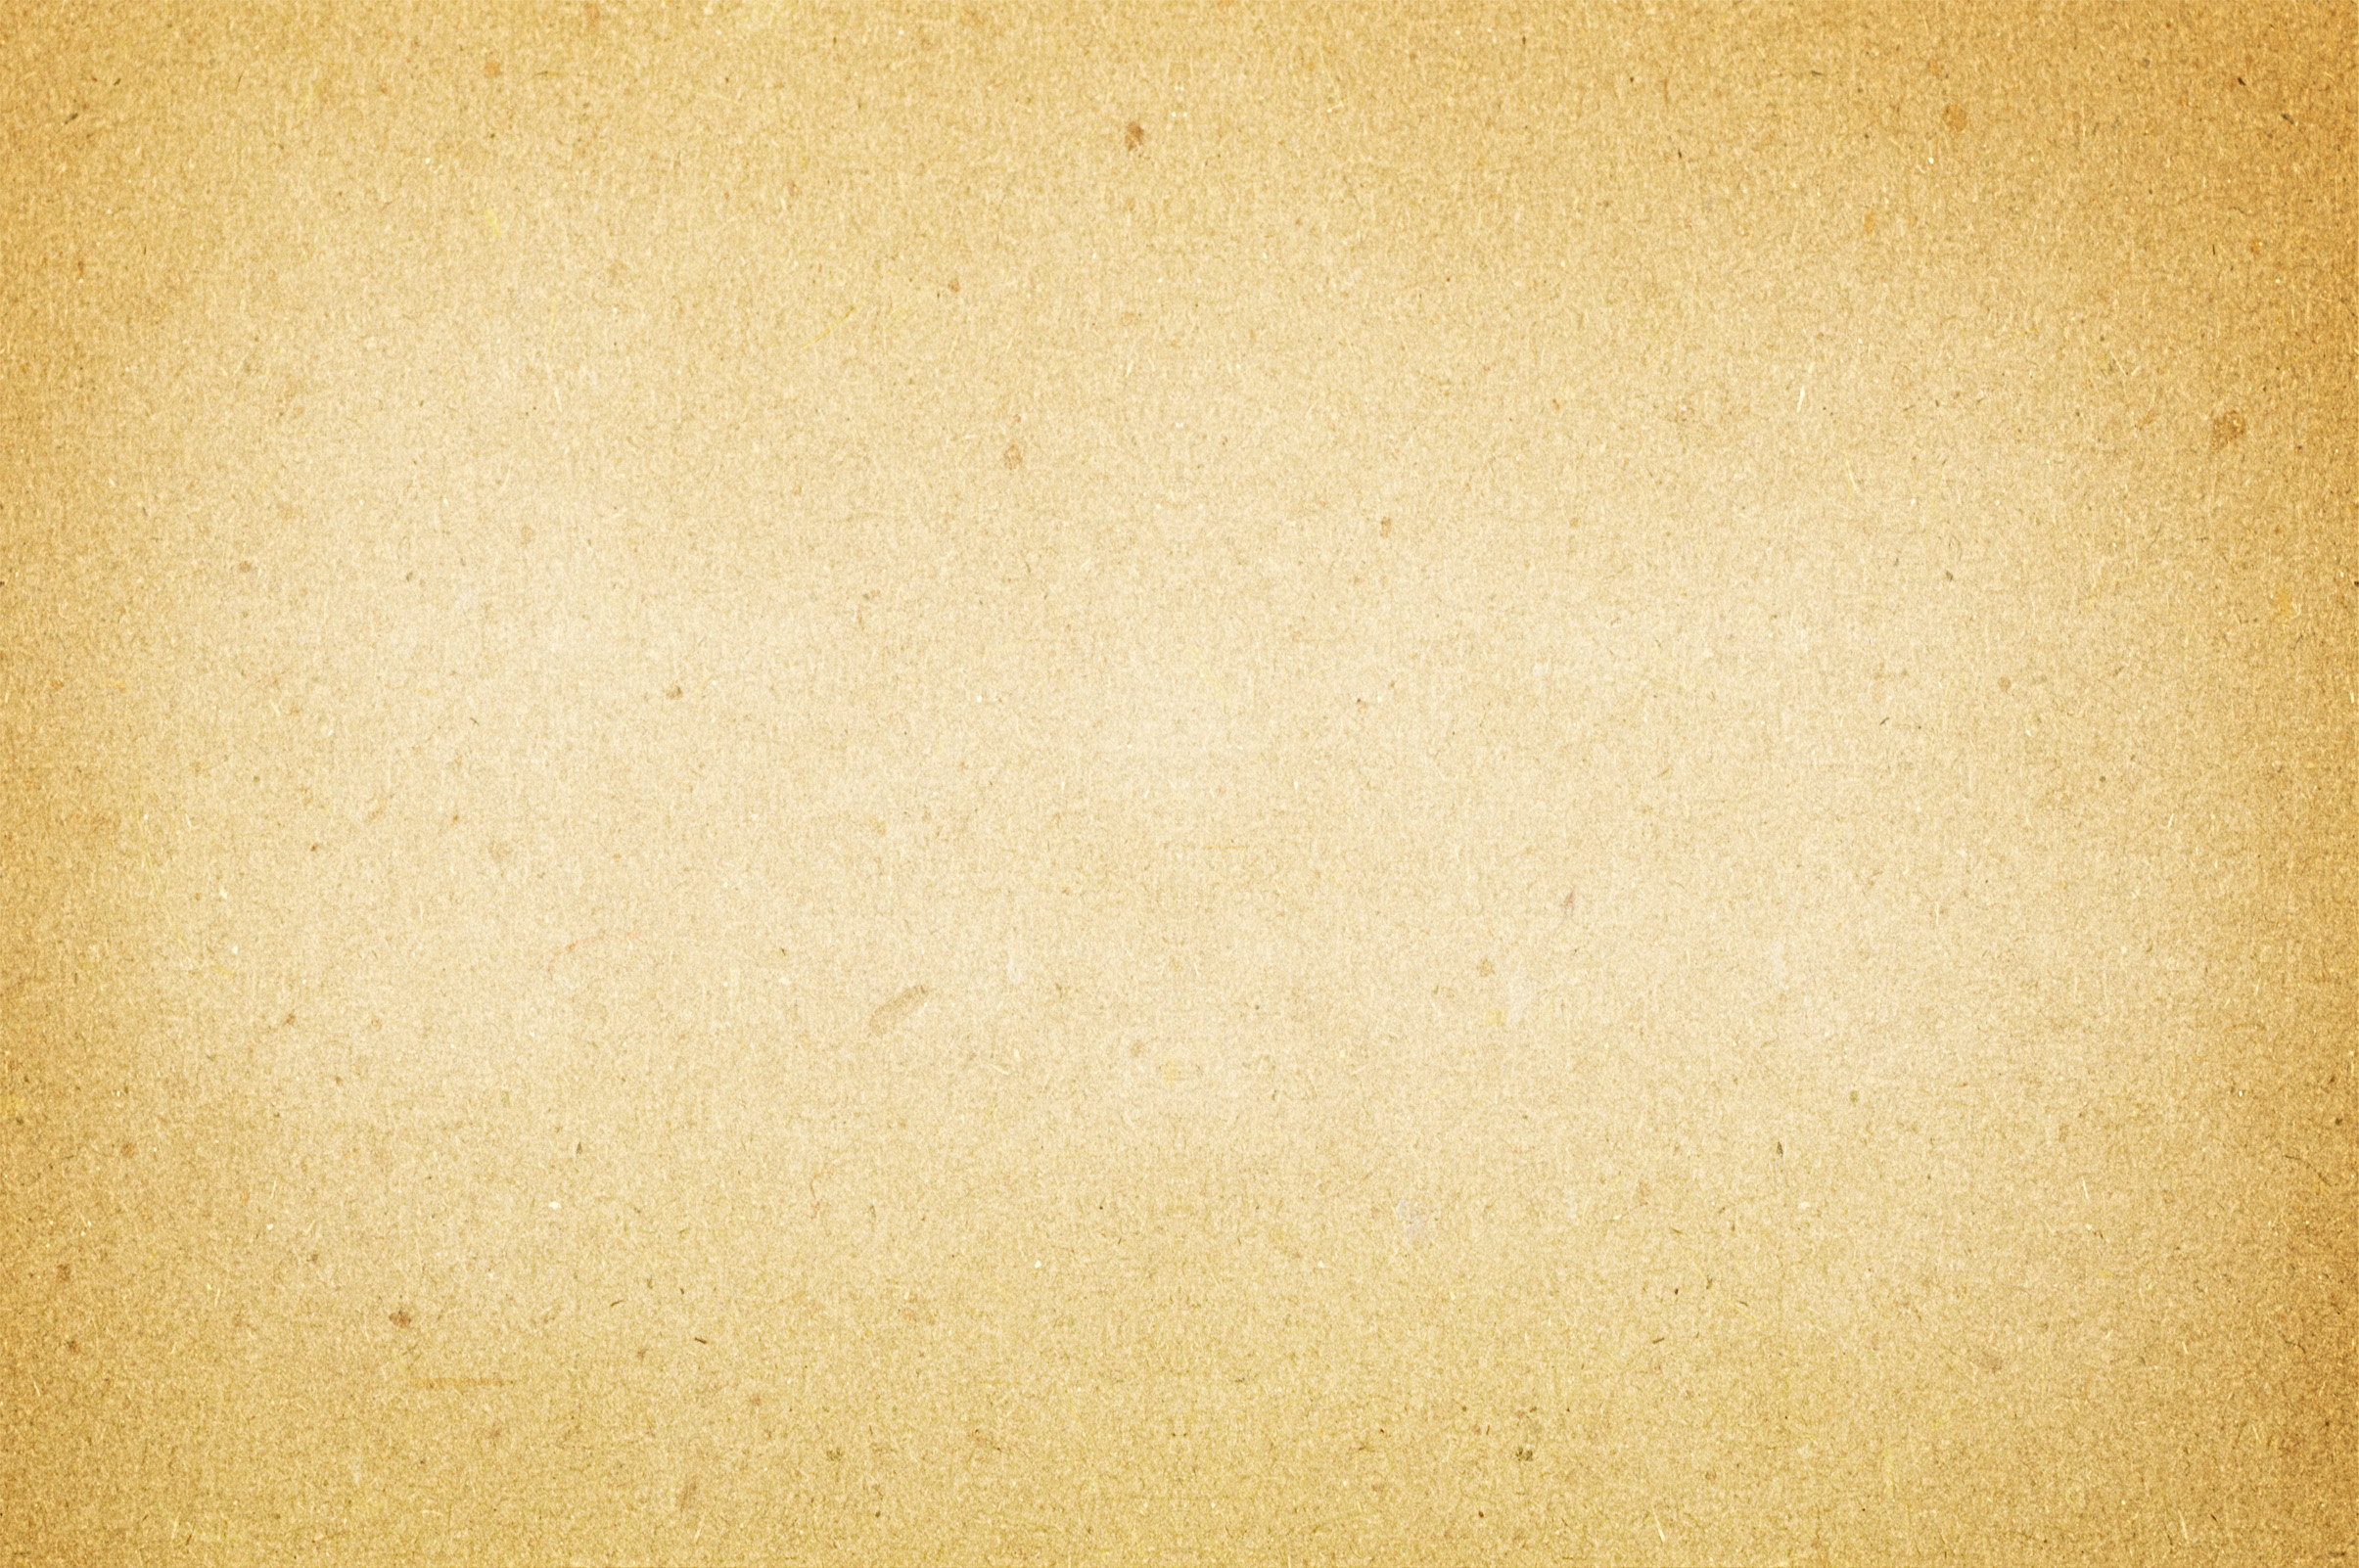 Cardboard texture background, Abstract, Open, Paper, Page, HQ Photo